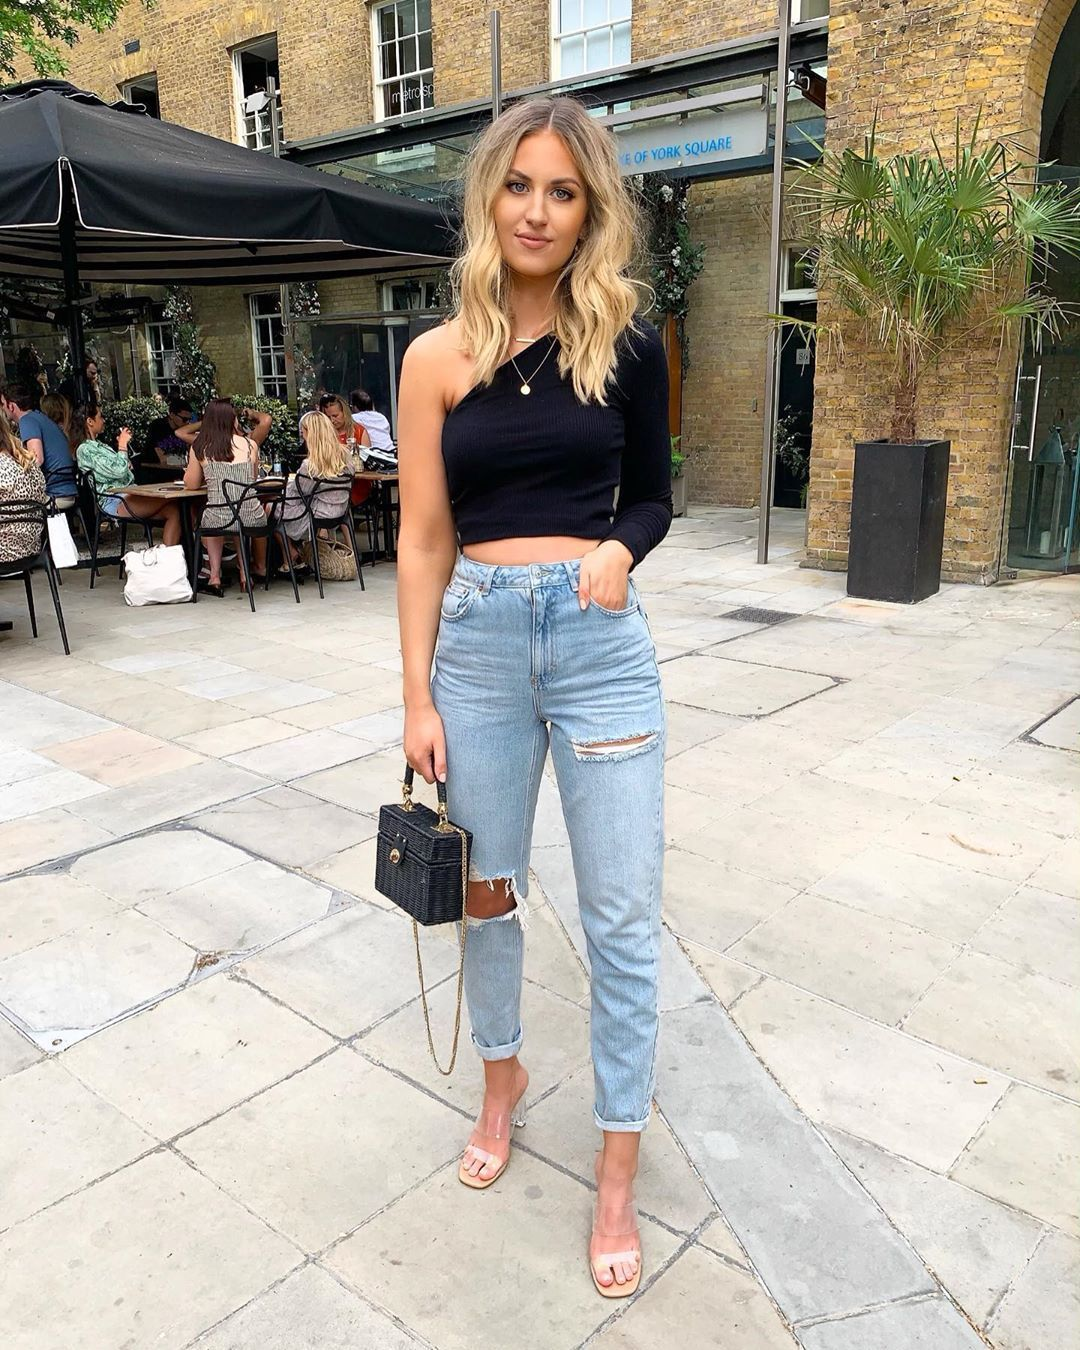 jeans ripped jeans high waisted jeans topshop sandals boxed bag black bag black top one shoulder crop tops